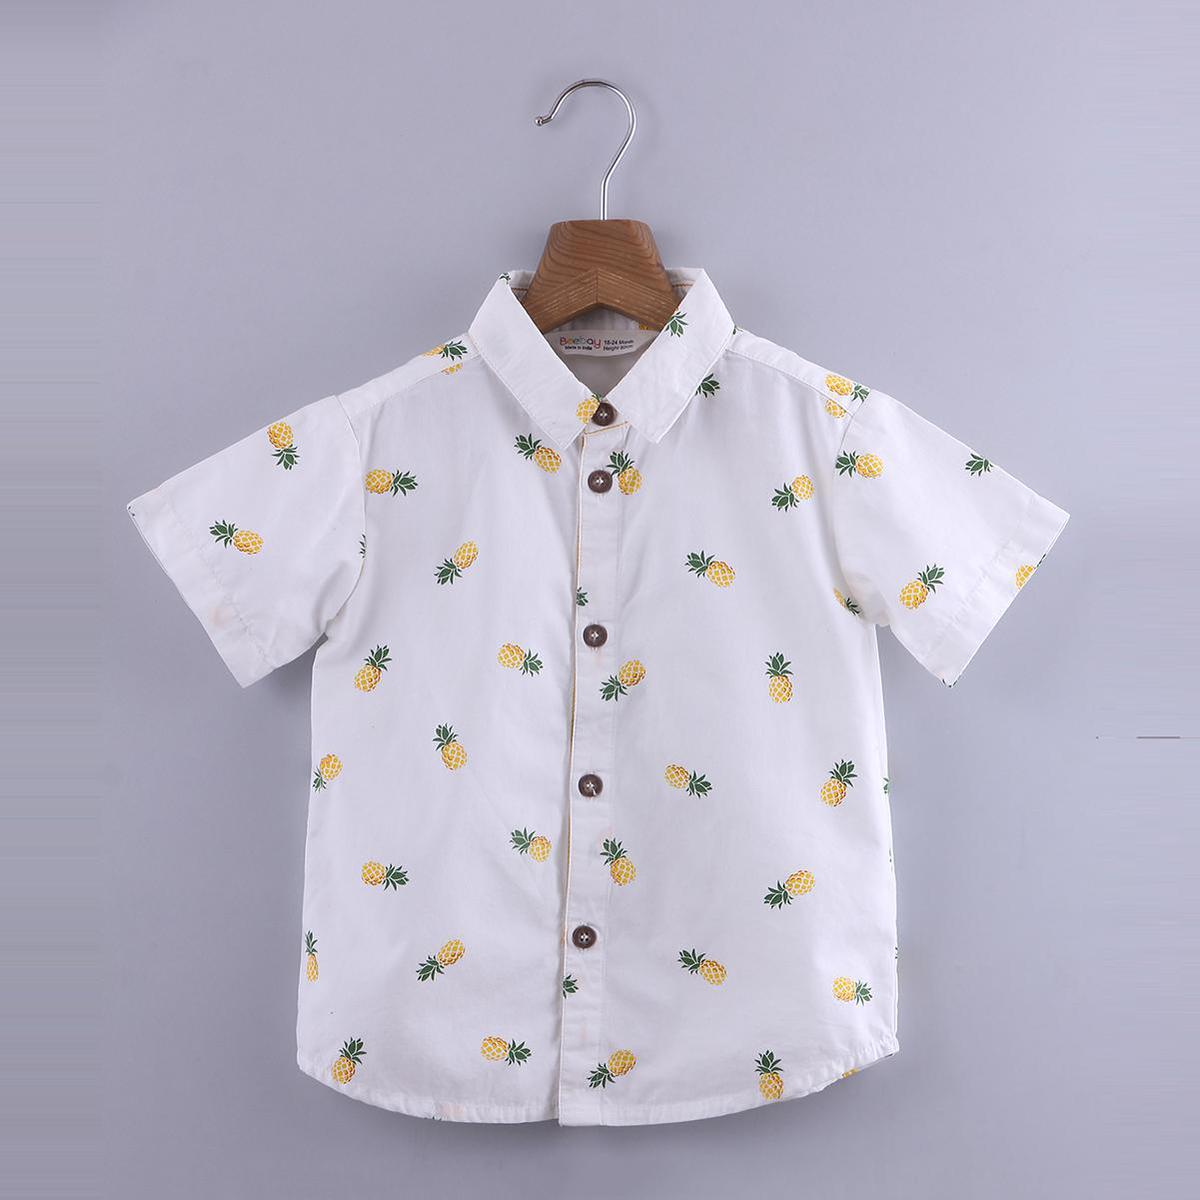 Beebay - White Colored Pineapple Print Cotton Shirt For Boys